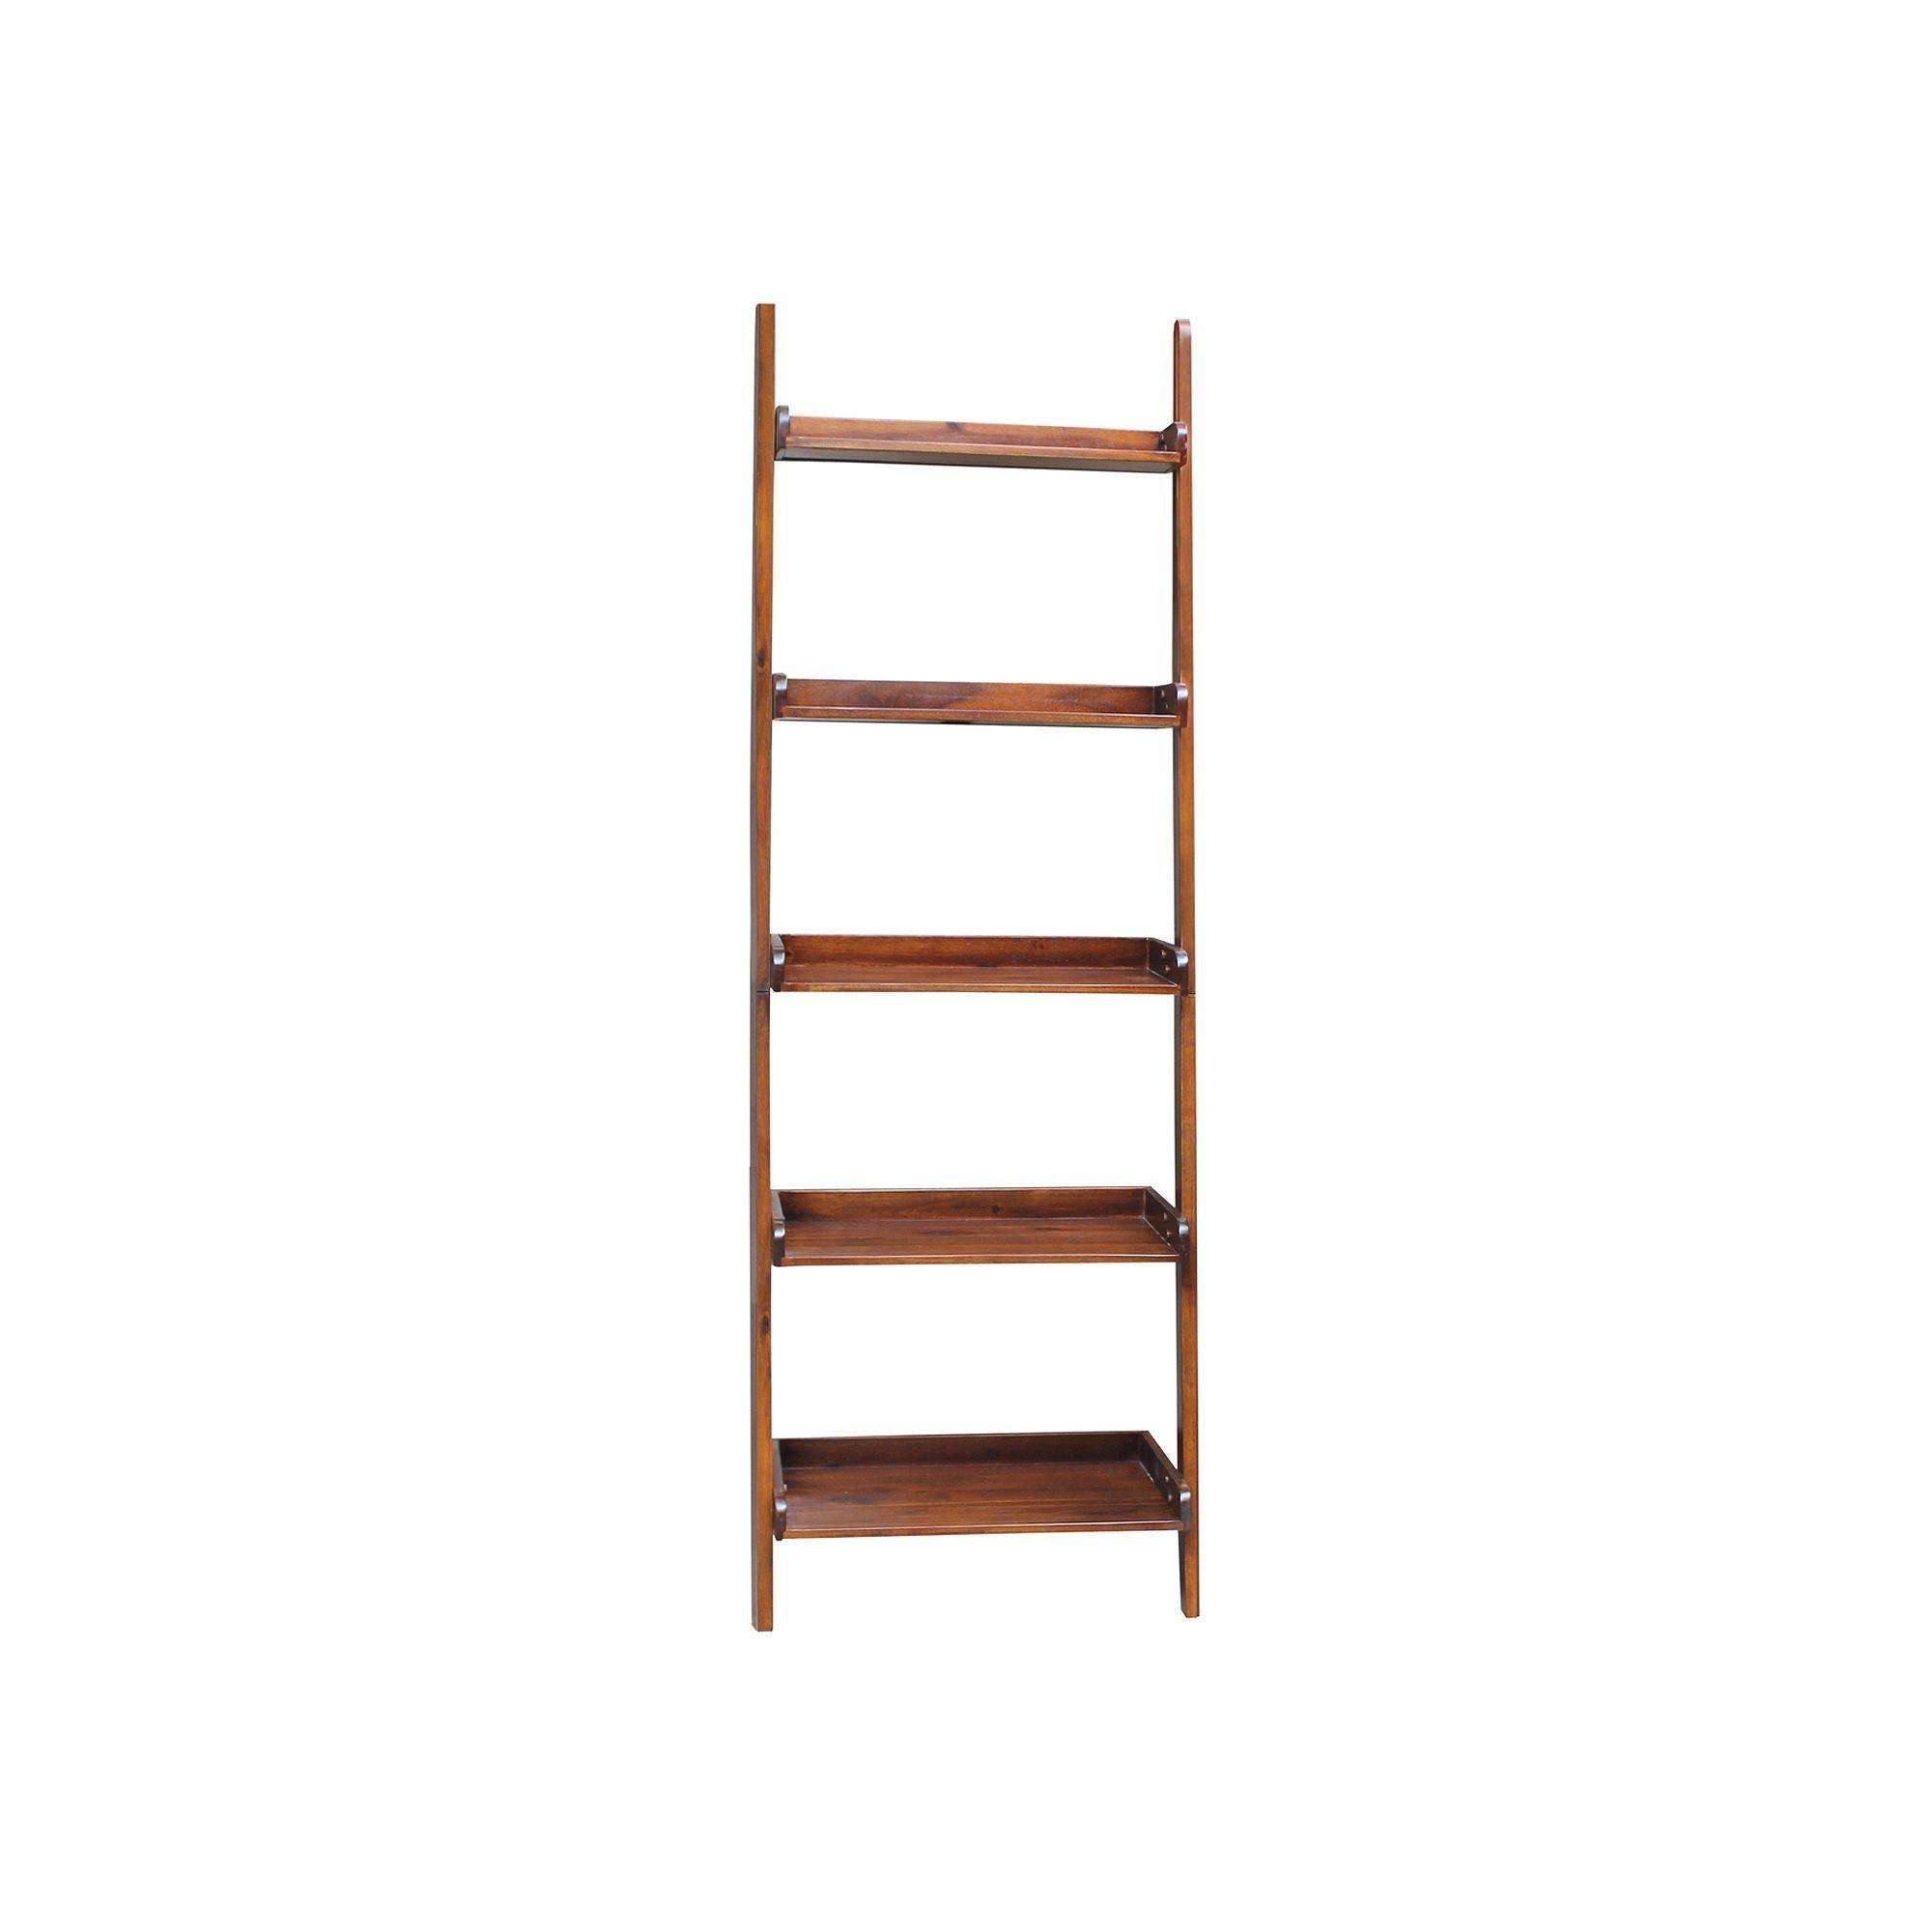 Stair Shelves Luxury Tiered Leaning Shelf Brown